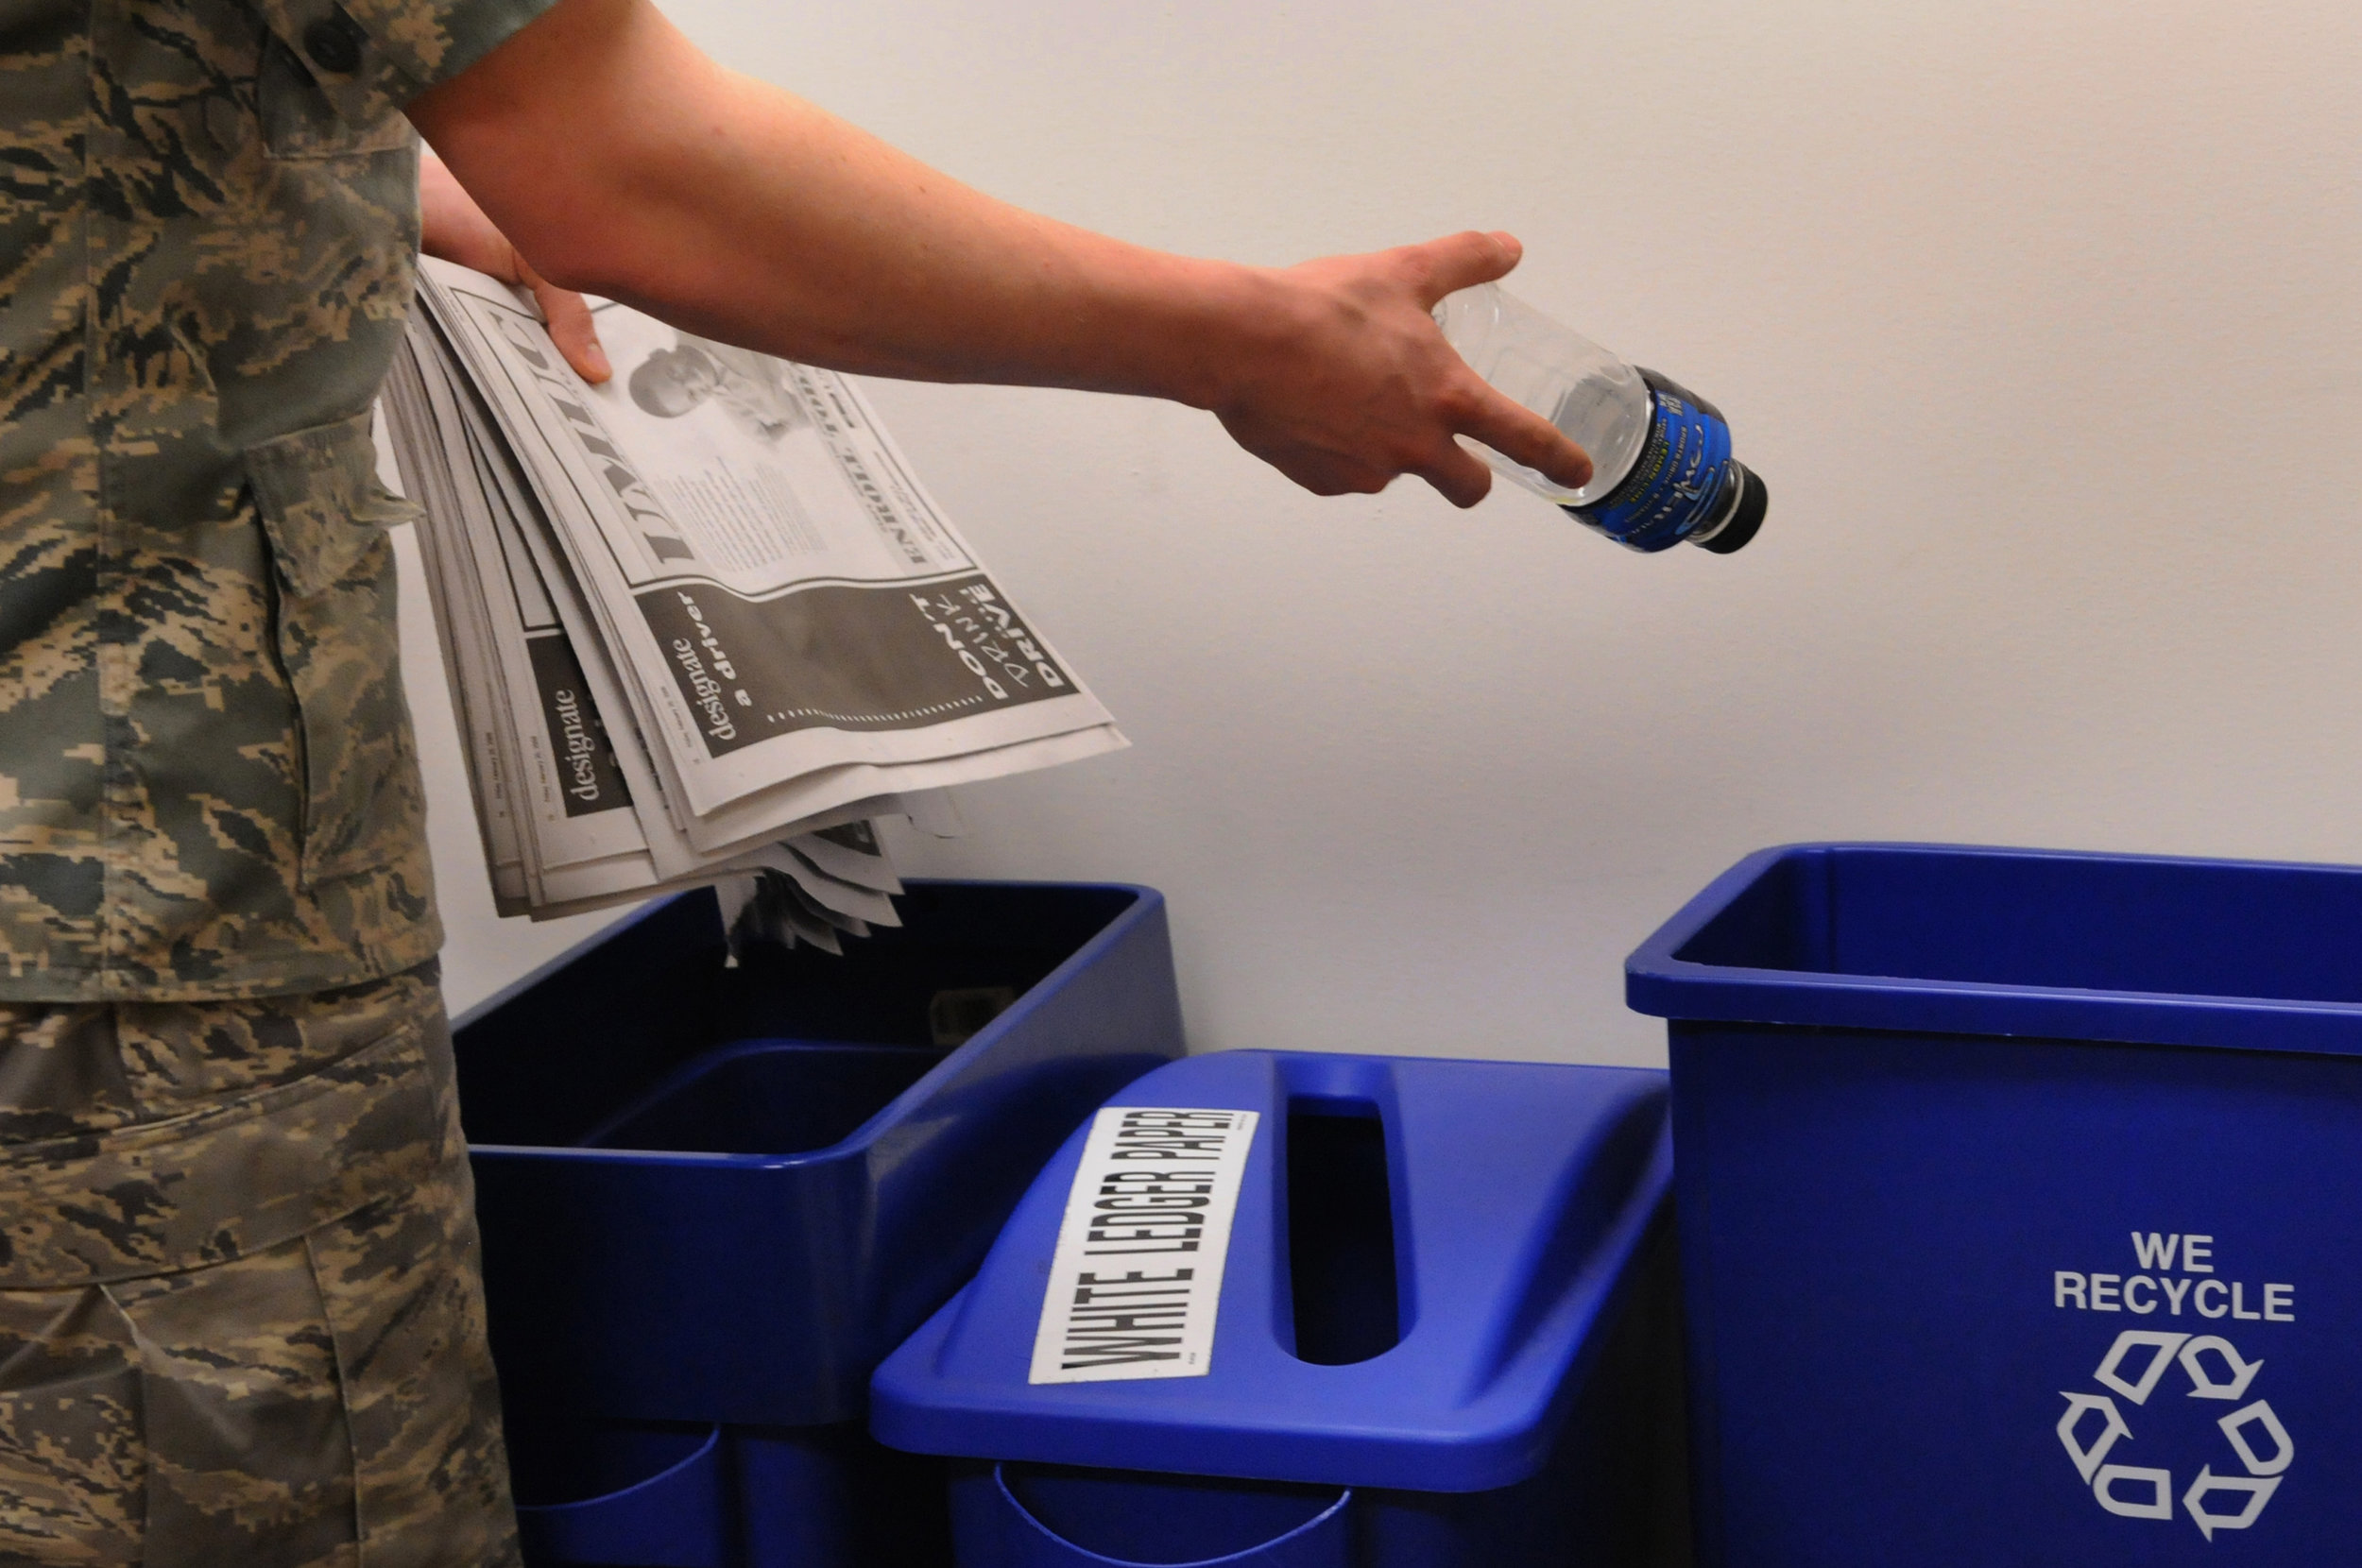 6. RECYCLE! -